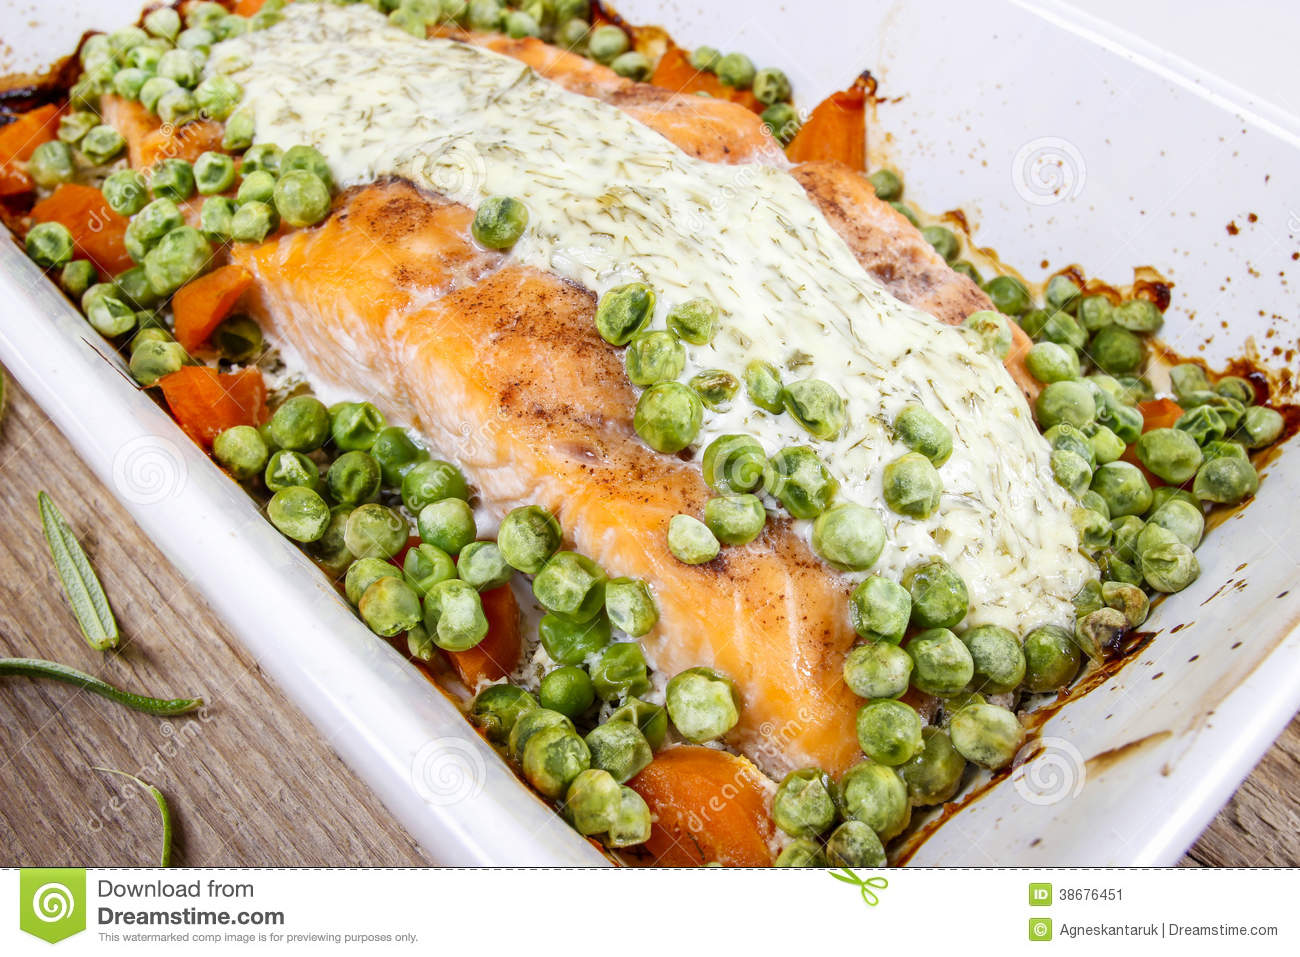 Roasted Salmon With Dill Sauce And Green Peas. Stock Image - Image ...